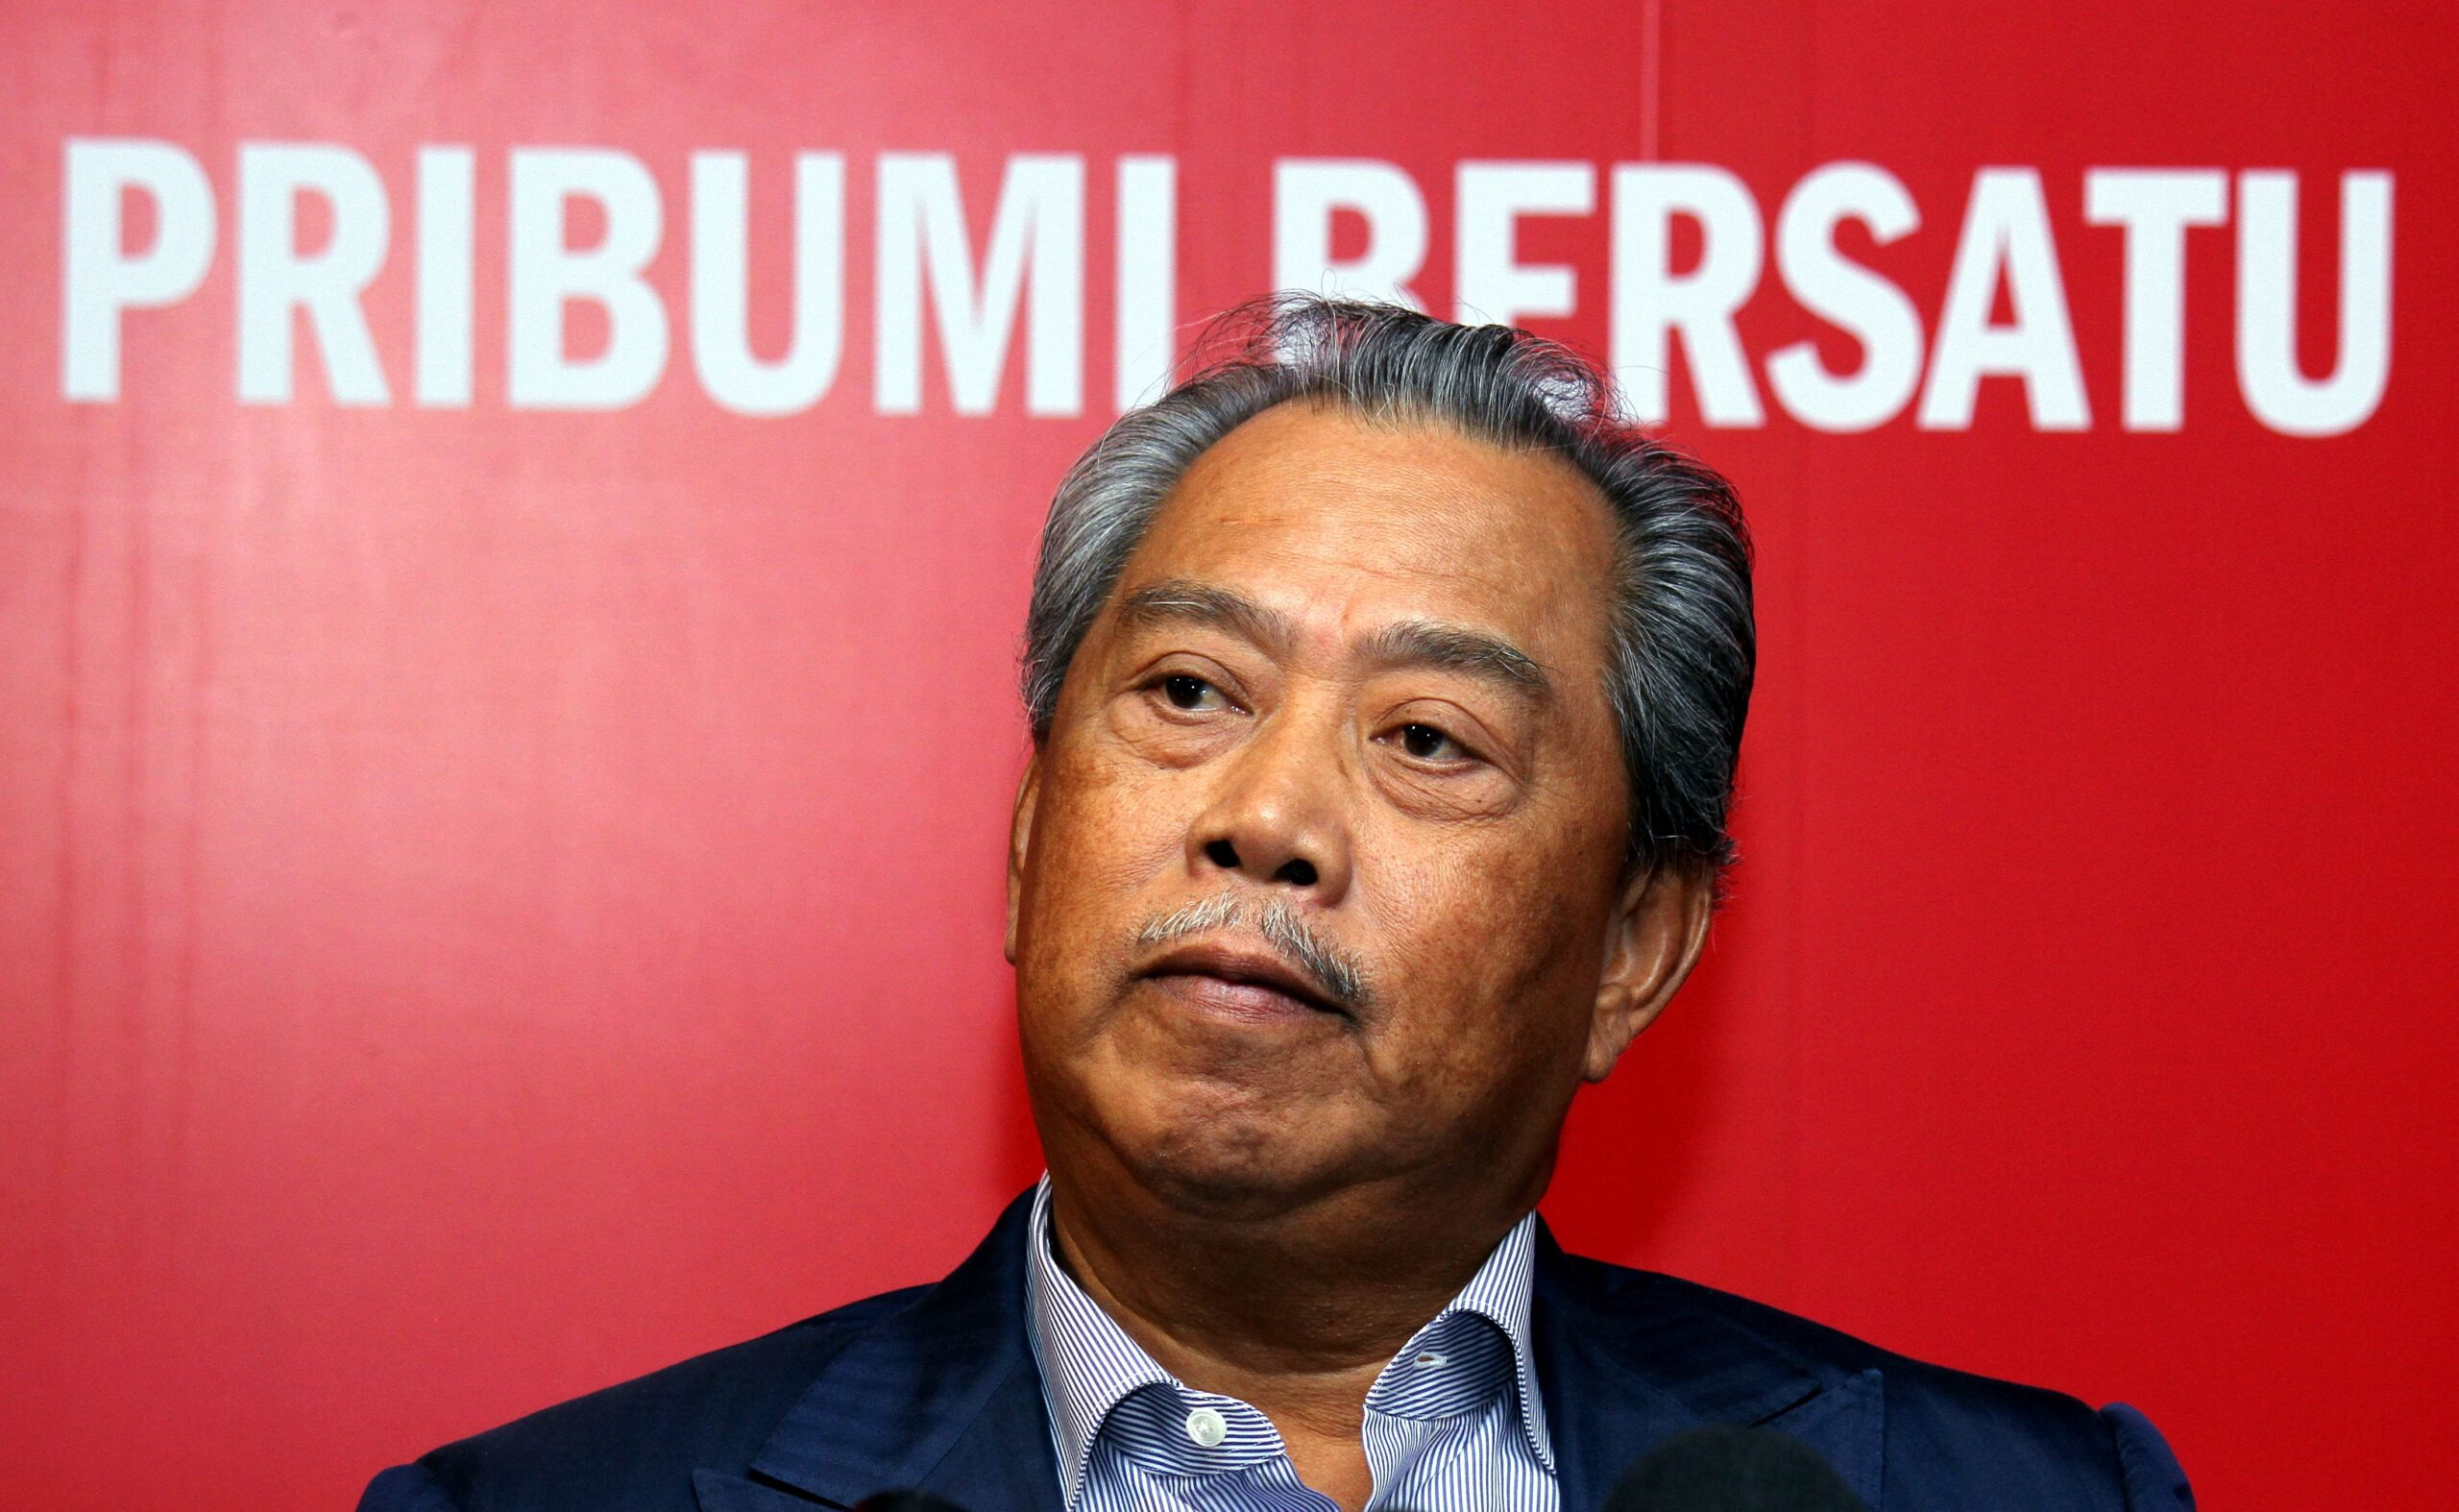 L'actuel Premier ministre malaisien Muhyiddin Yassin. (Source : Liew Chin Tong)